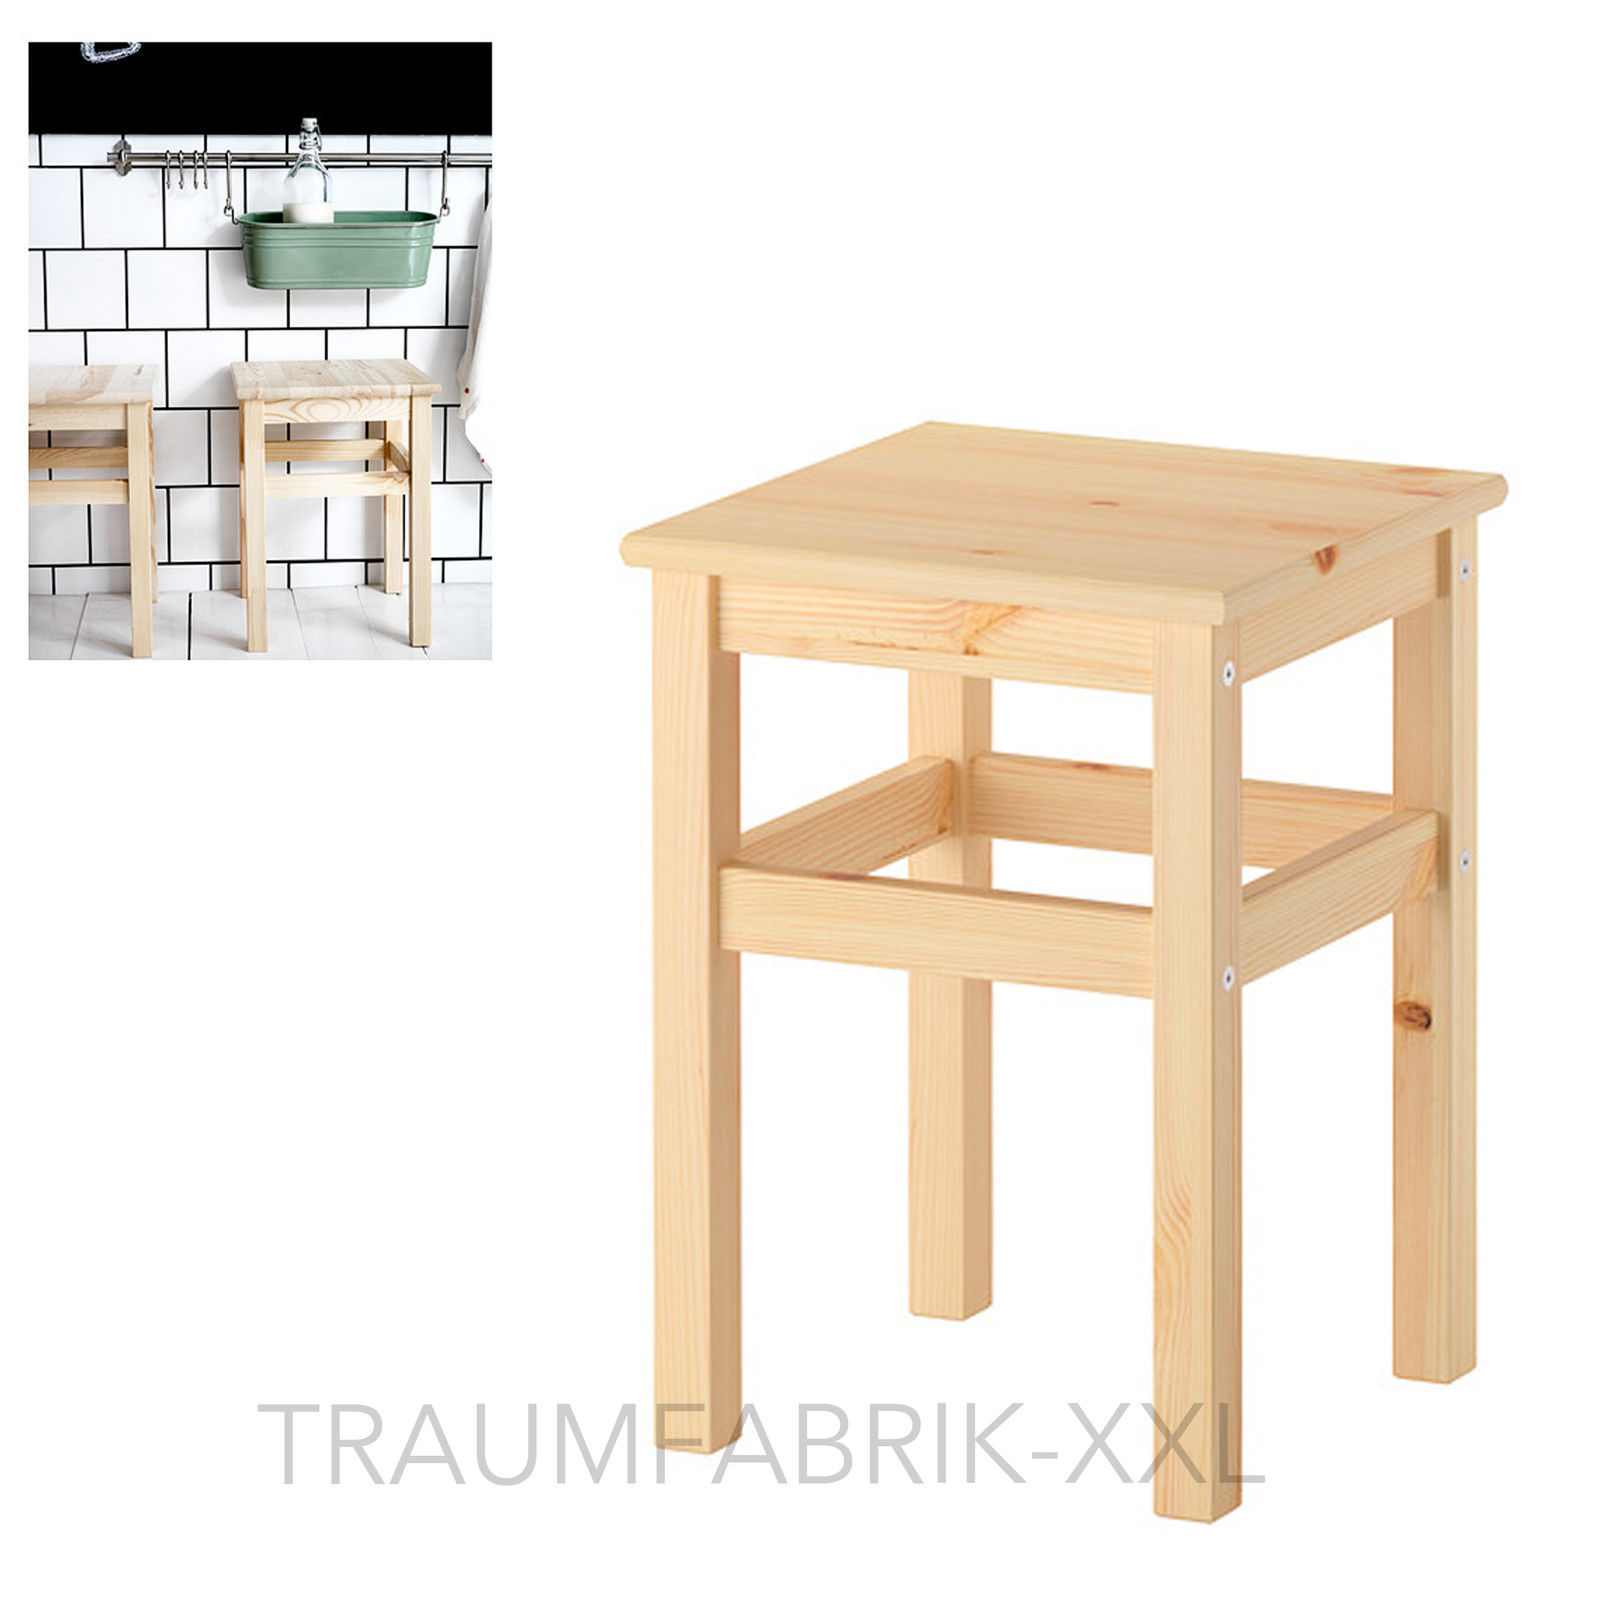 ikea oddvar hocker holzhocker schemel holzschemel 33x33x45cm massive kiefer neu traumfabrik xxl. Black Bedroom Furniture Sets. Home Design Ideas